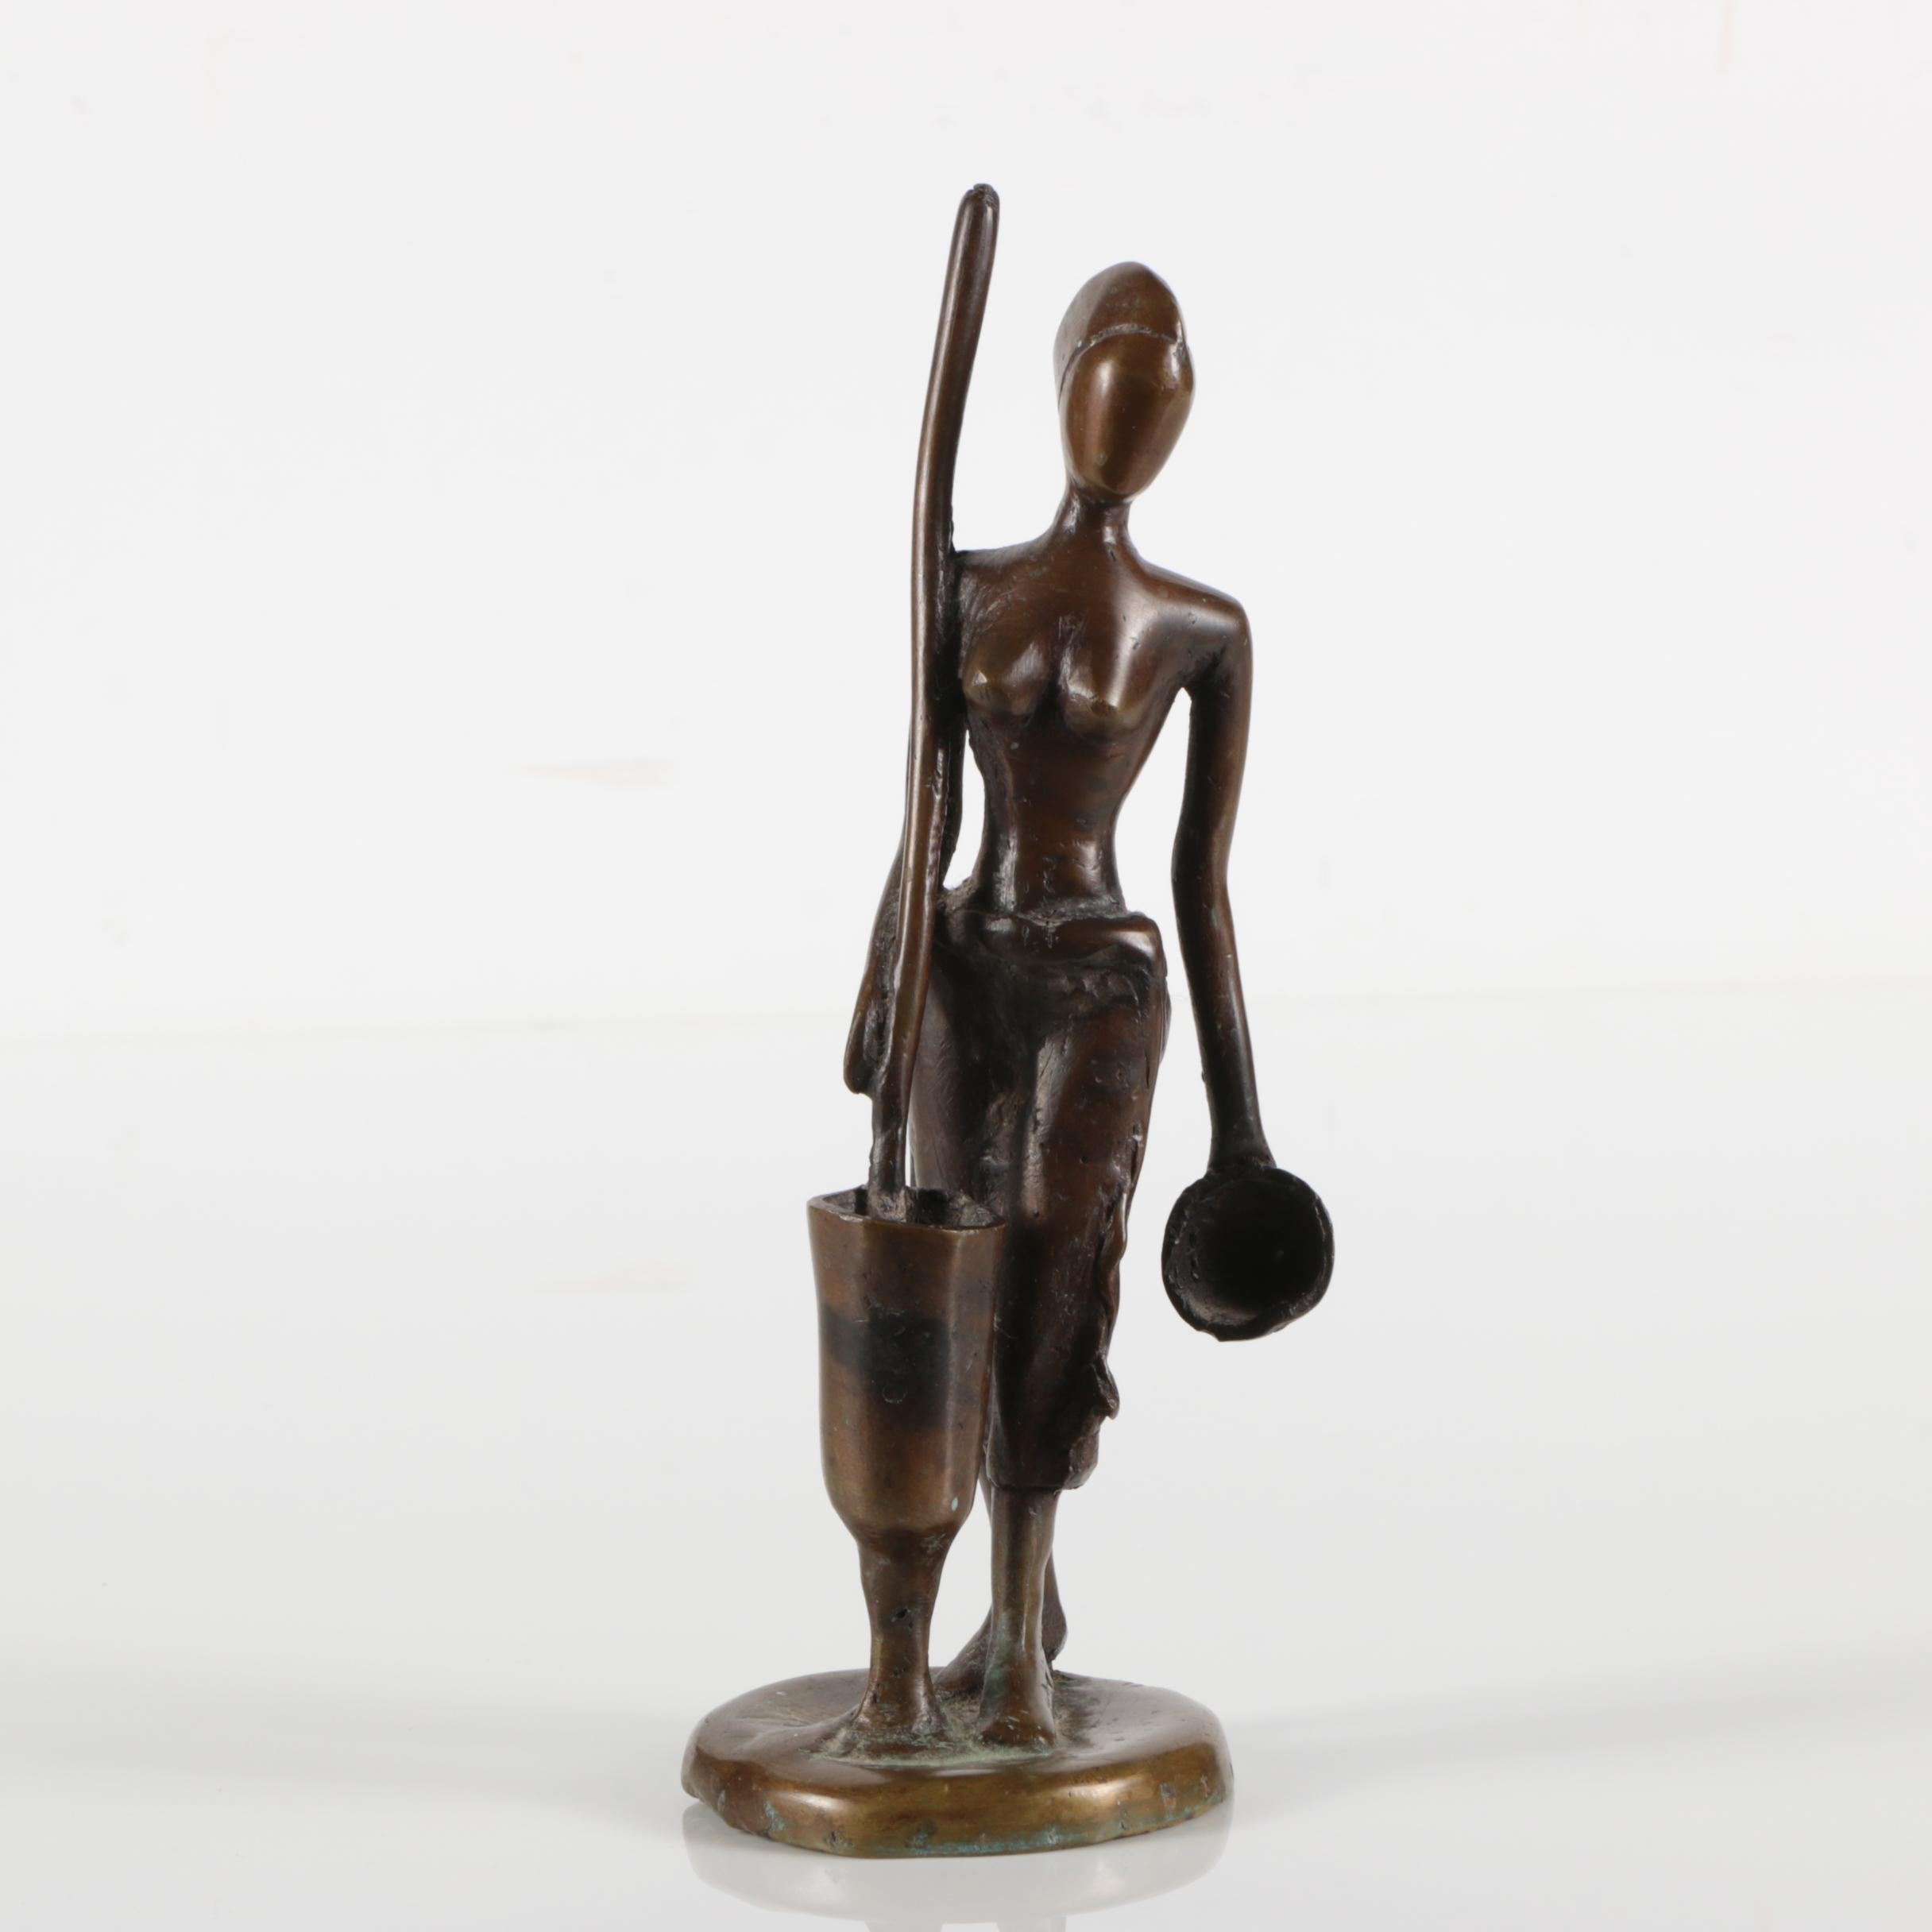 Brass Sculpture of Female Figure with Bowl and Churn